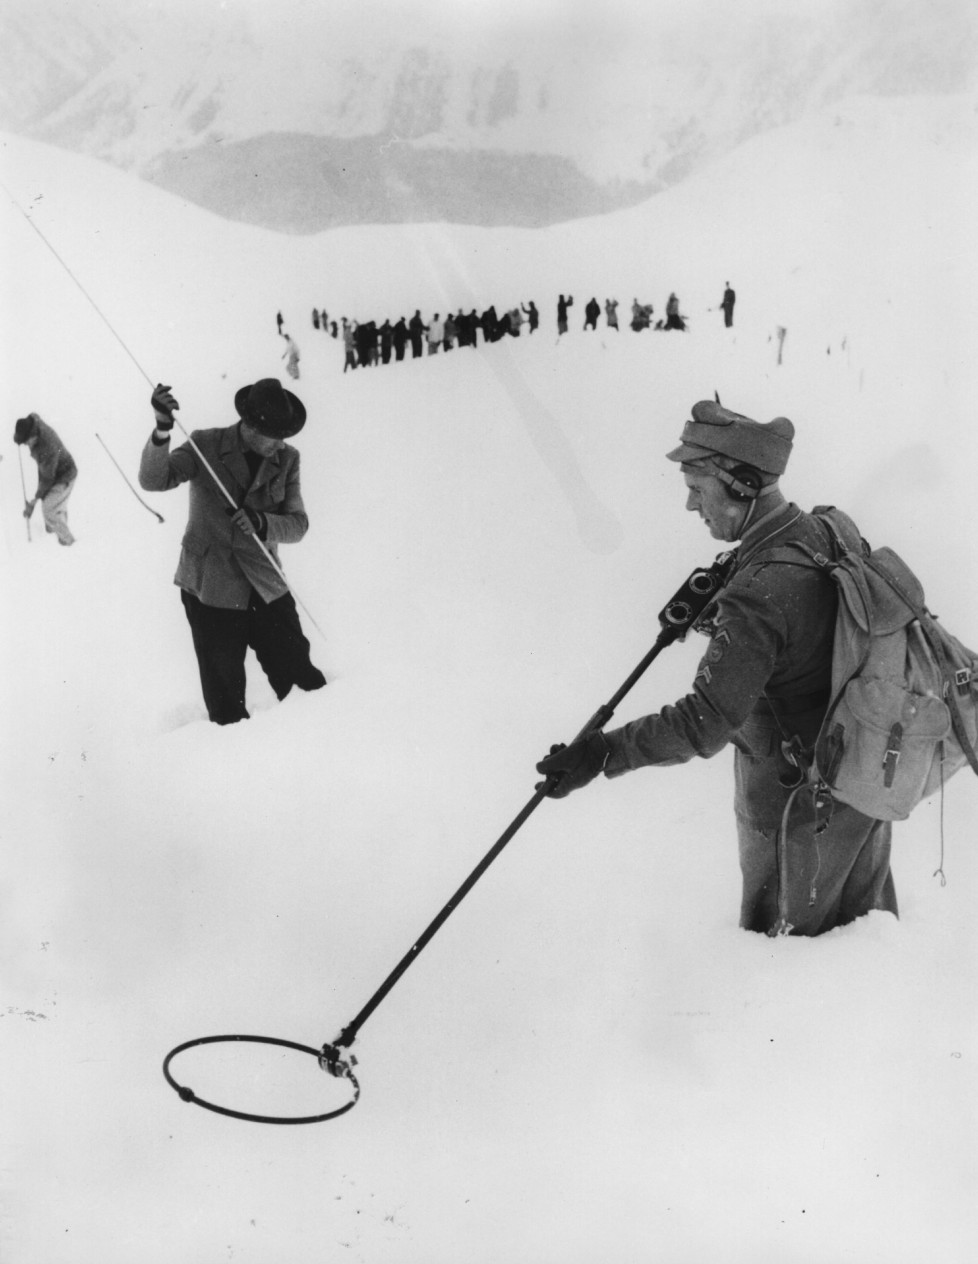 4th January 1956: Six winter sports enthusiasts were buried by an avalanche on the famous Parsenn ski trail. Two of the men were rescued, three others including a woman were killed. Here a Swiss soldier uses a metal detector in the hopes that he may get a lead on the whereabouts of the missing man, Richard Jackson of California. (Photo by Hulton Archive/Getty Images)